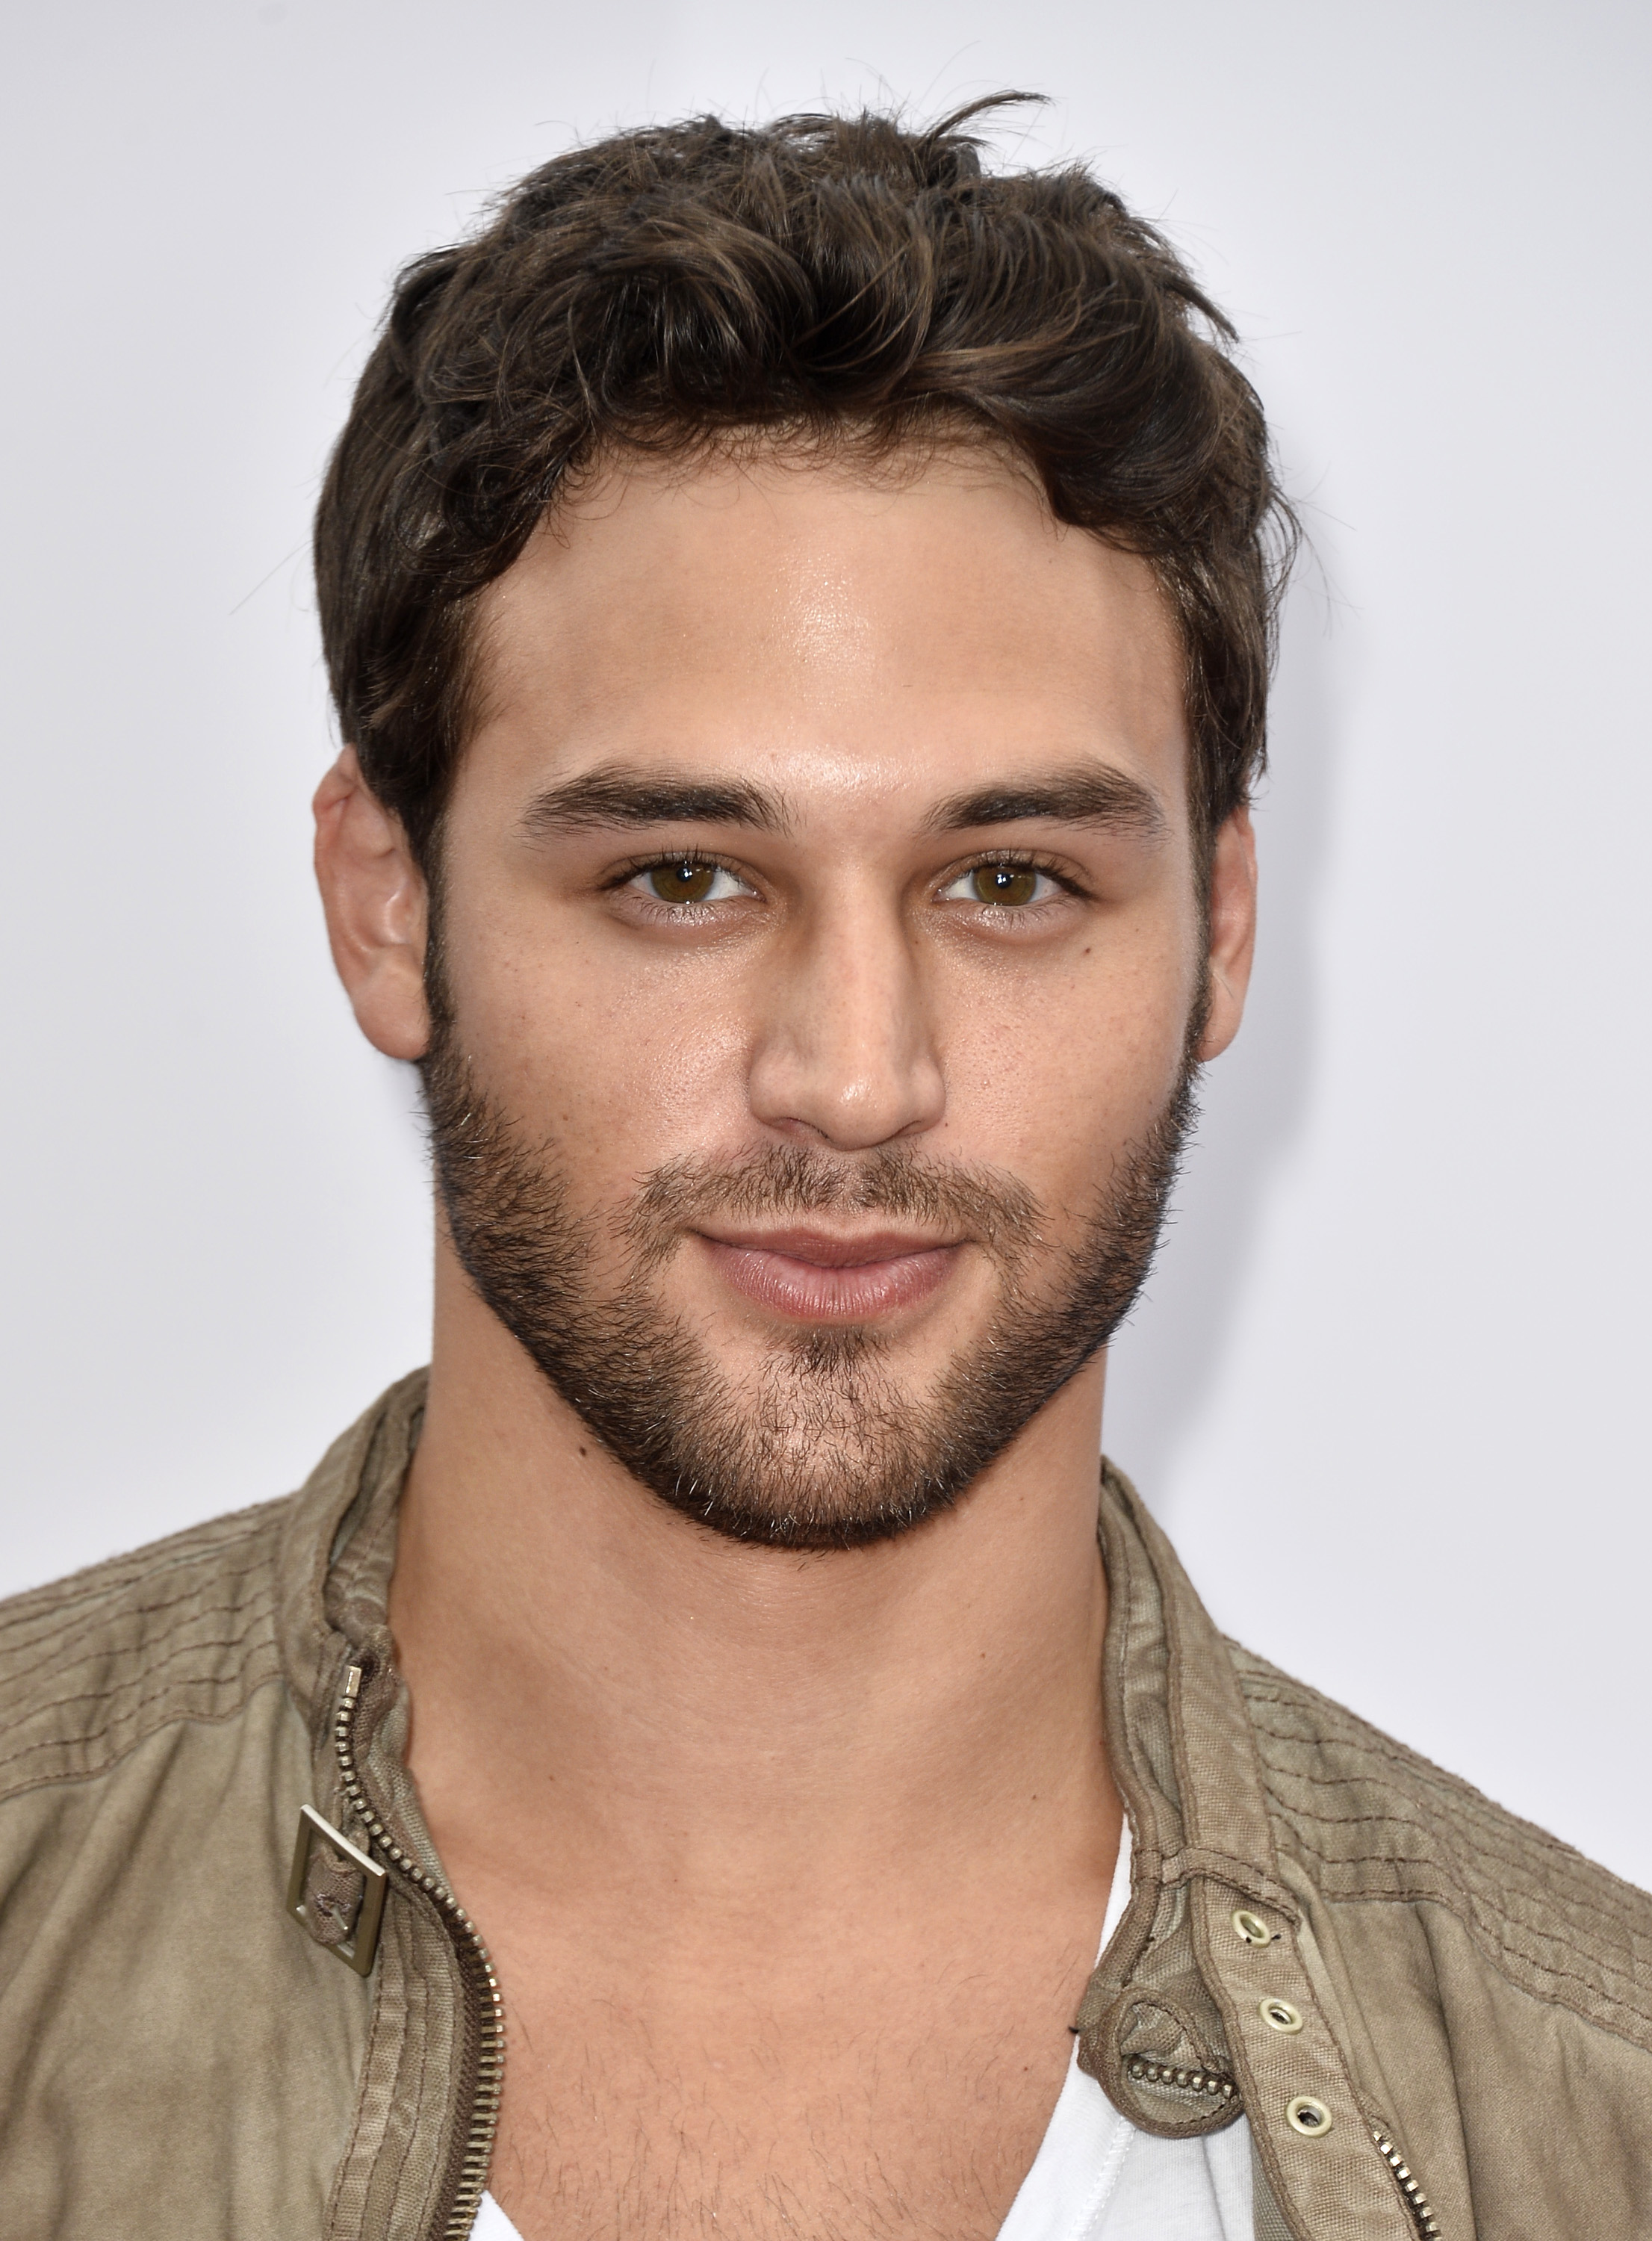 jem and the holograms casts ryan guzman as rio 7 fun facts about